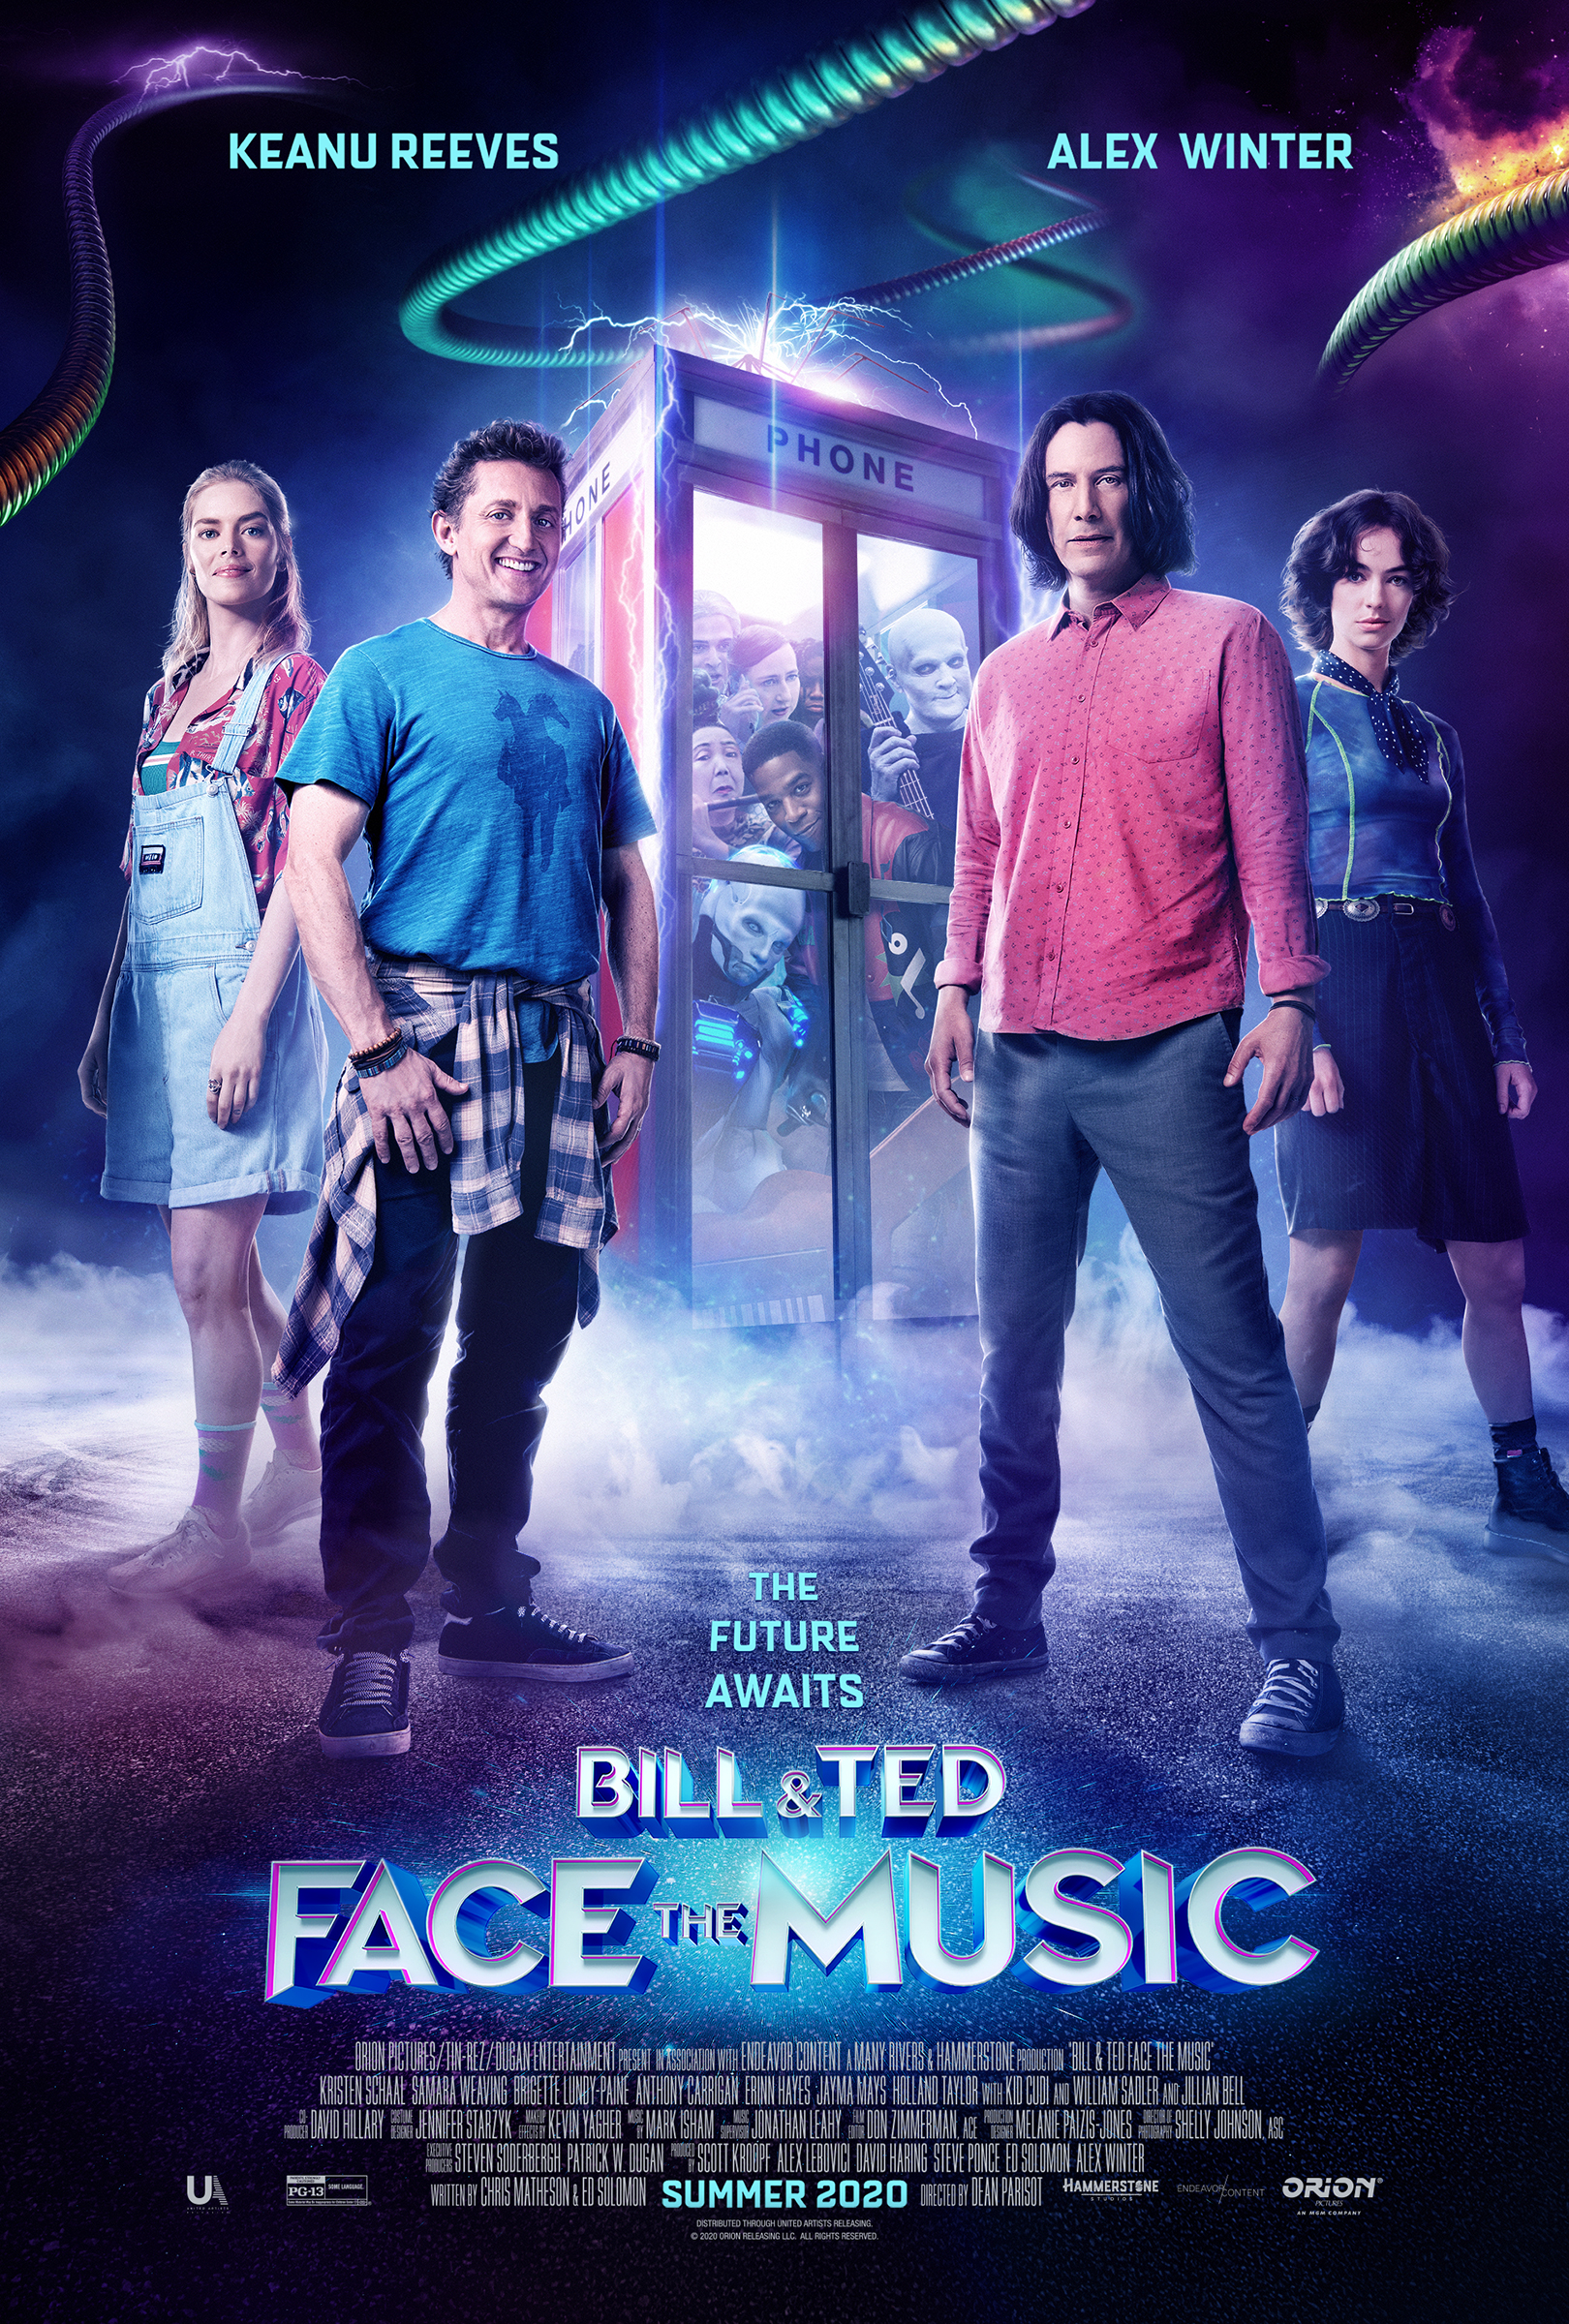 Bill and Ted facethe music new cover photo